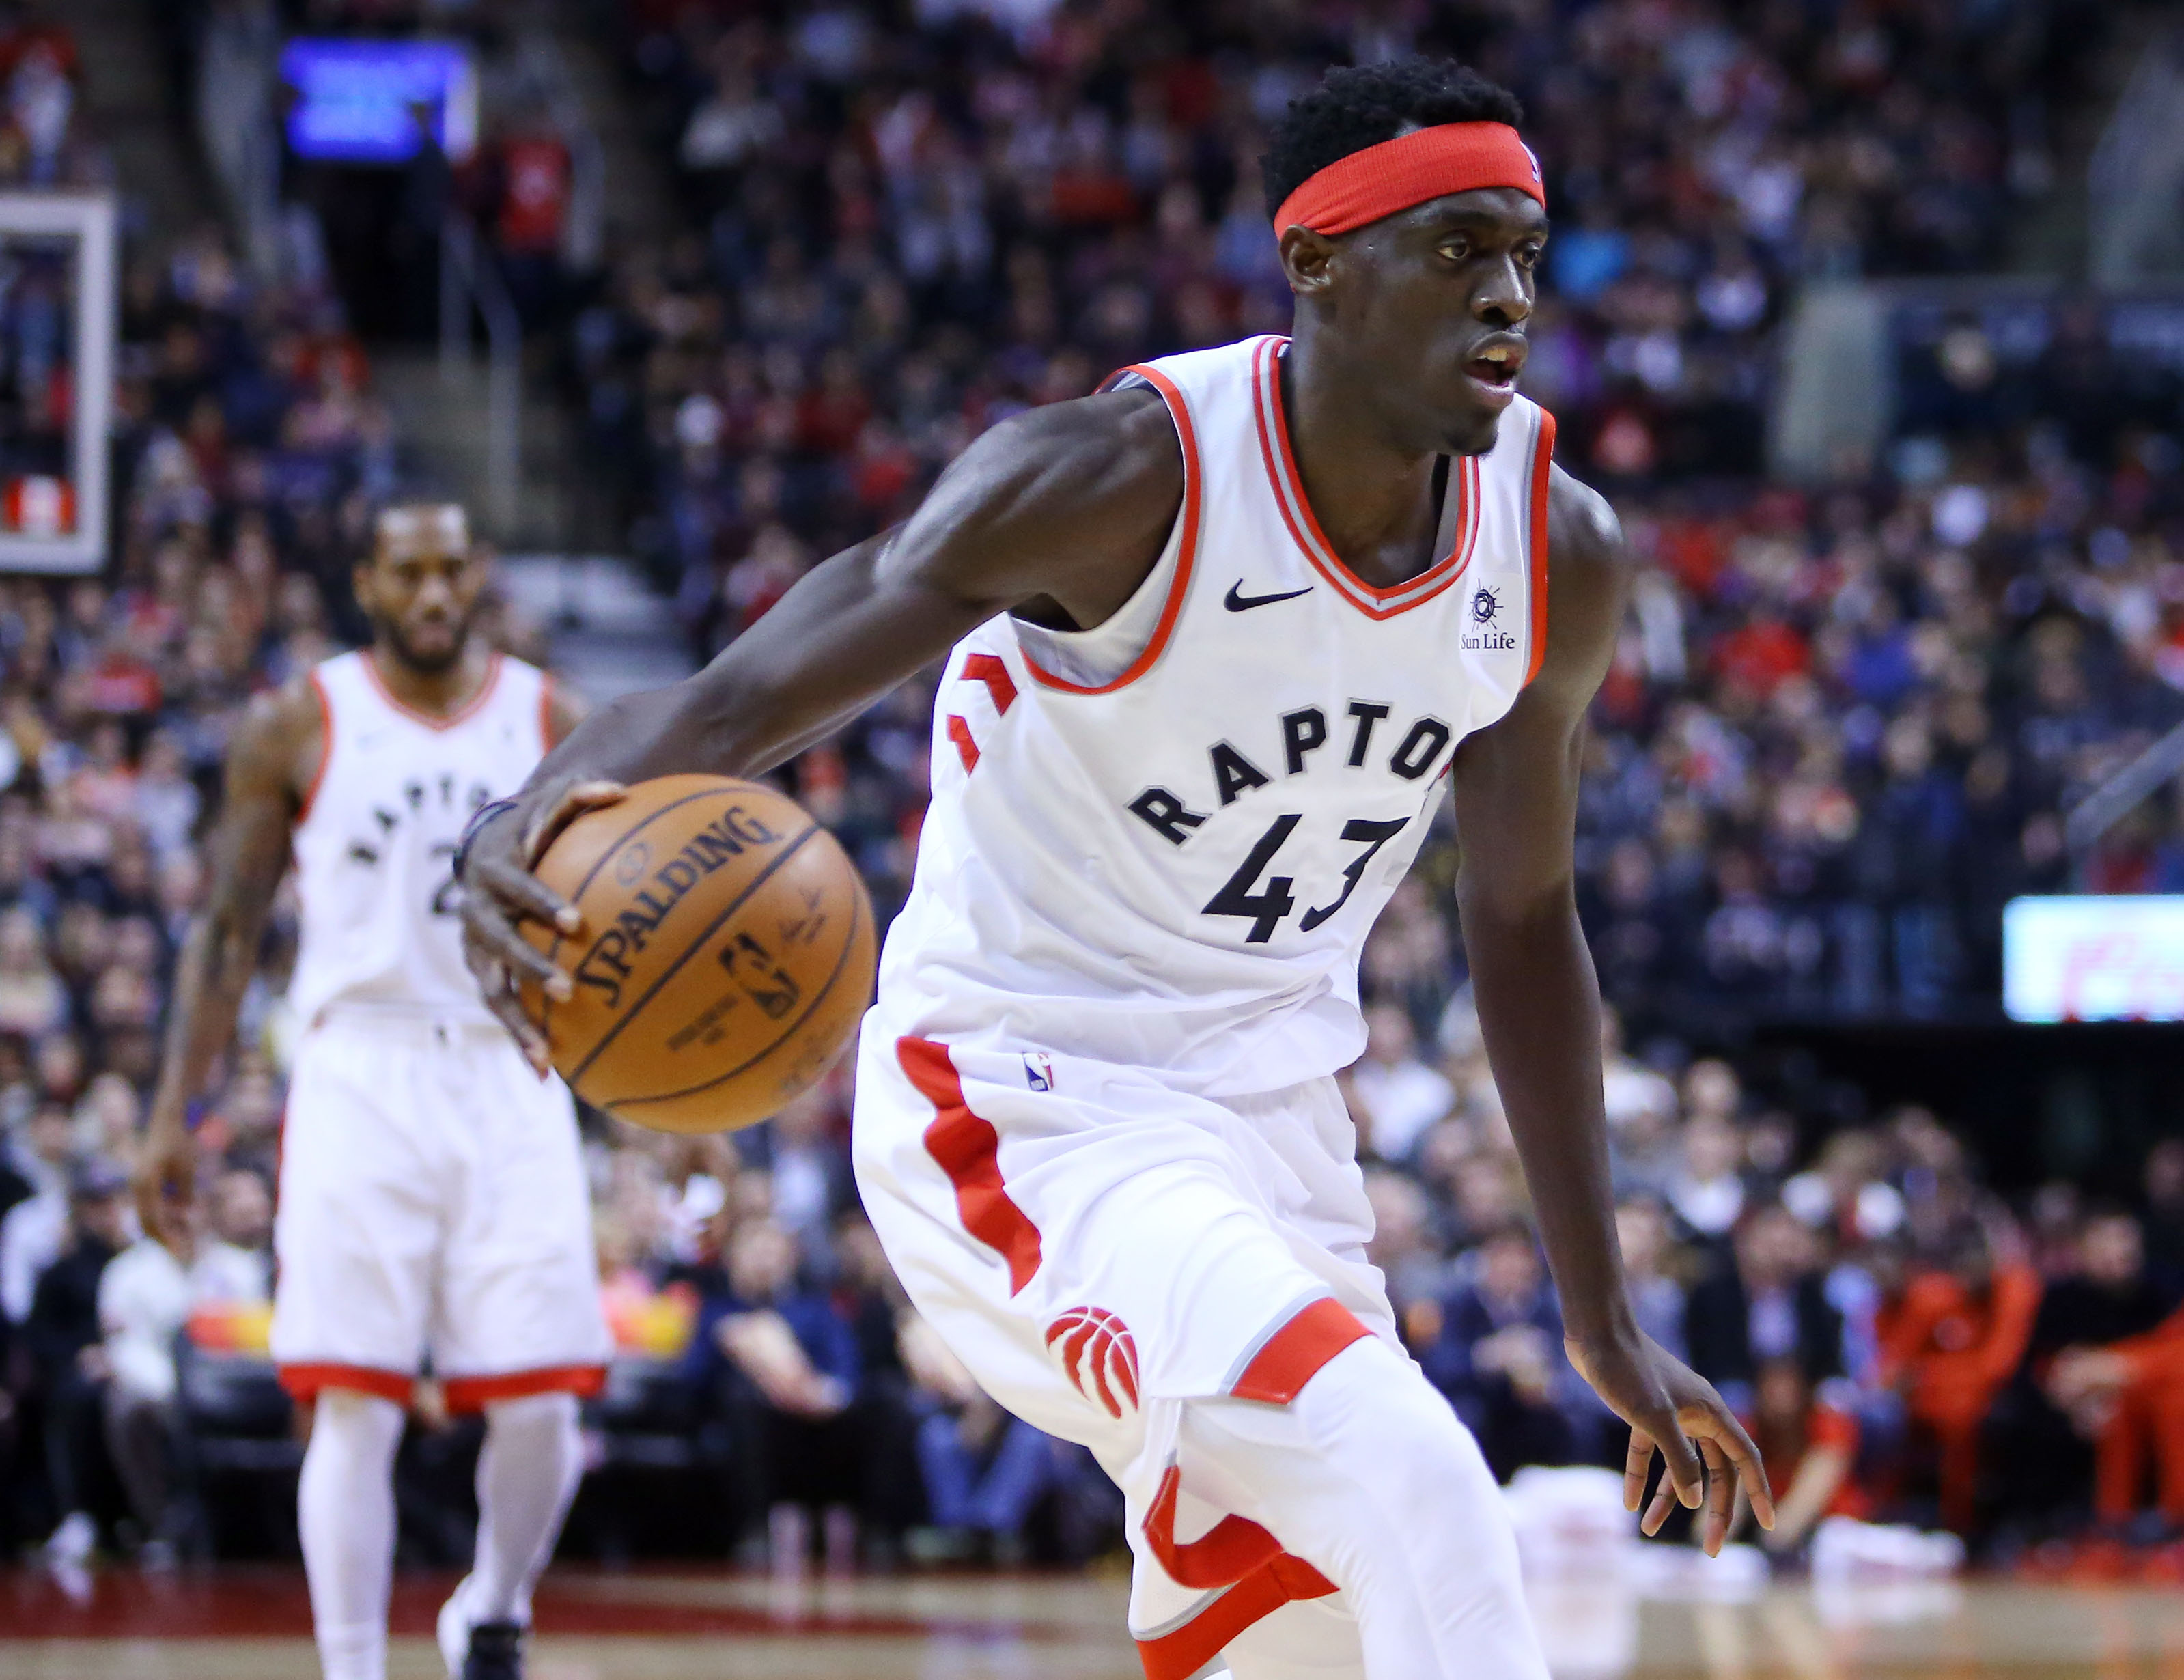 f00557cad34 Raptors star Pascal Siakam s breakout season will be tested